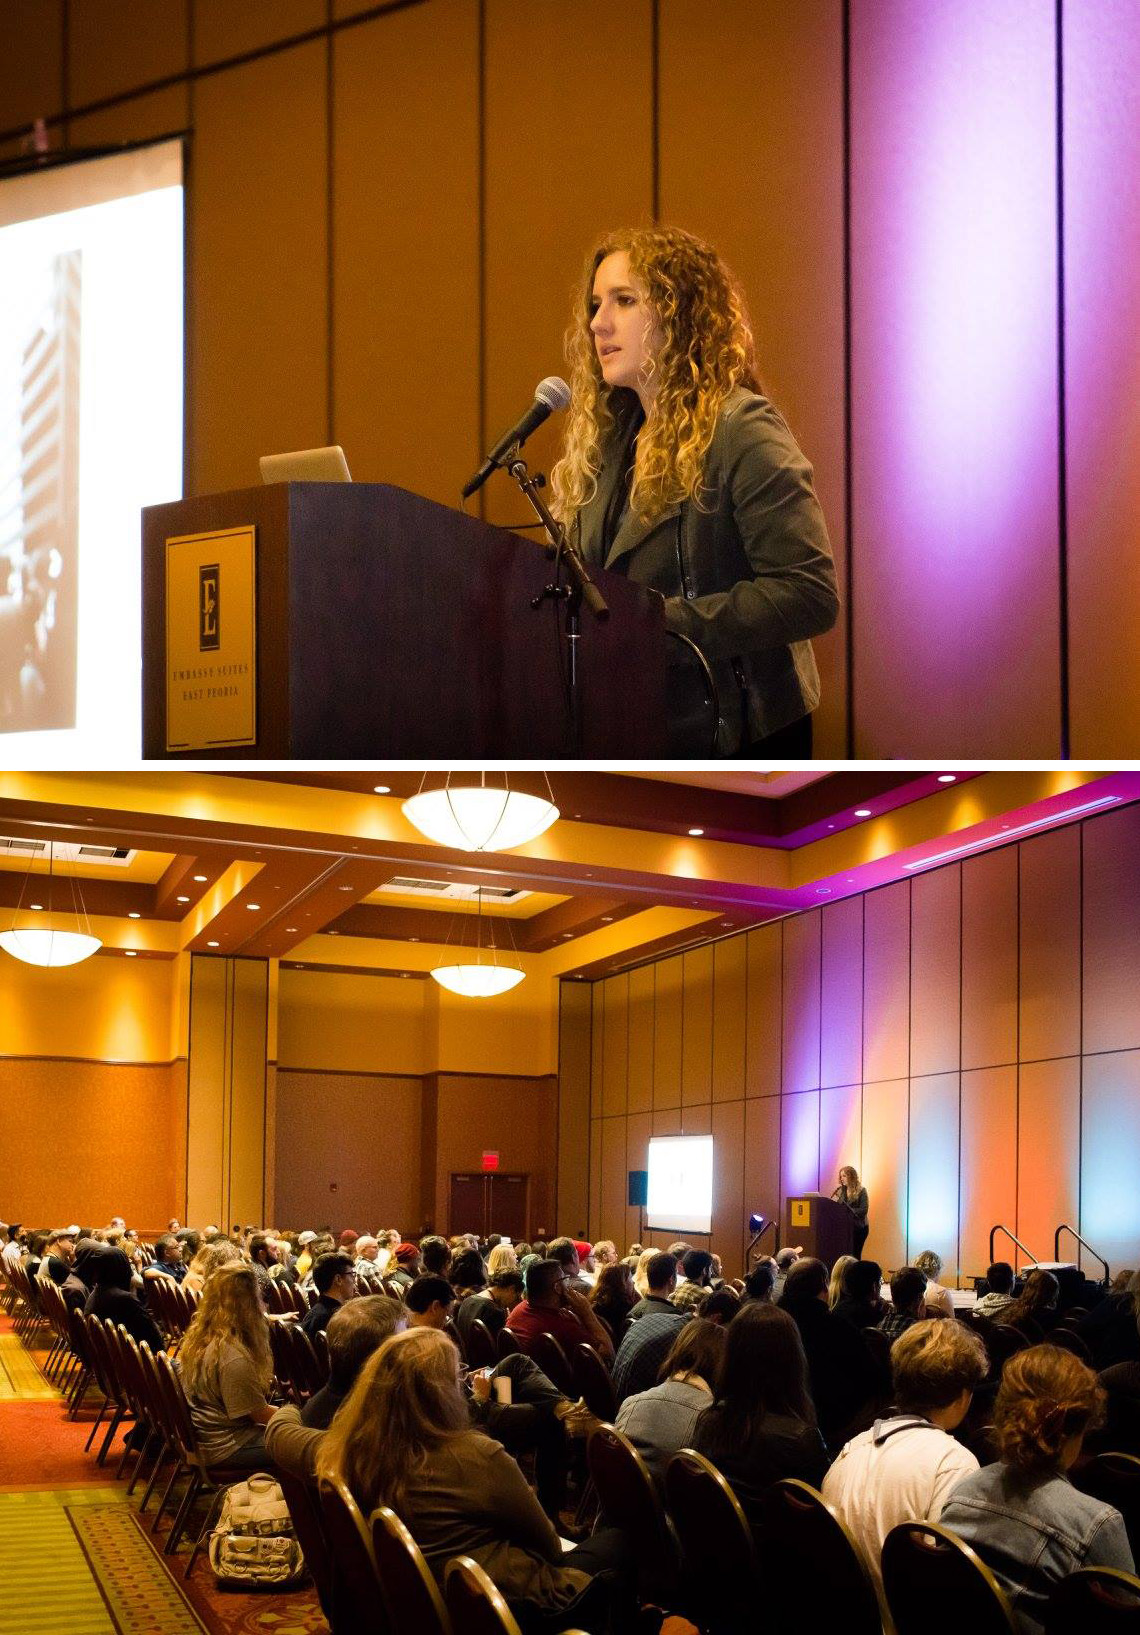 A few photos from my recent talk at the Midwest Society for Photographic Education Conference. This years theme was Developing Spaces/Places, perfect fit for my work. Big thanks to Jason Reblando and Margaret LeJeune for putting on a great conference.